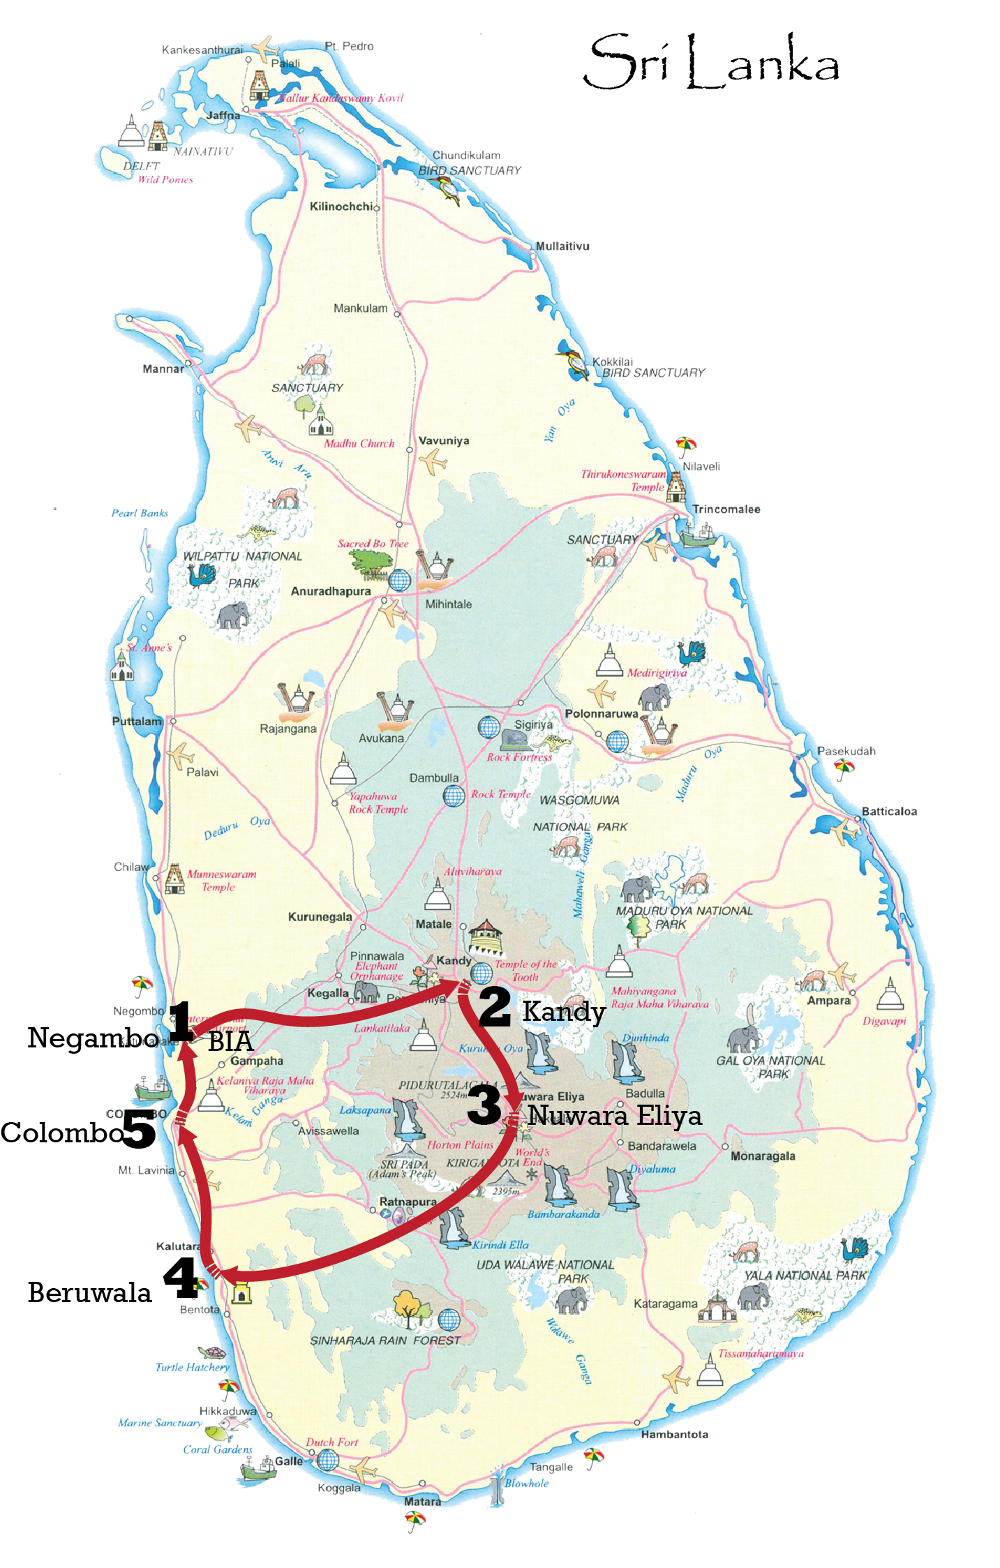 Sri Lanka leisure tour map - silver package